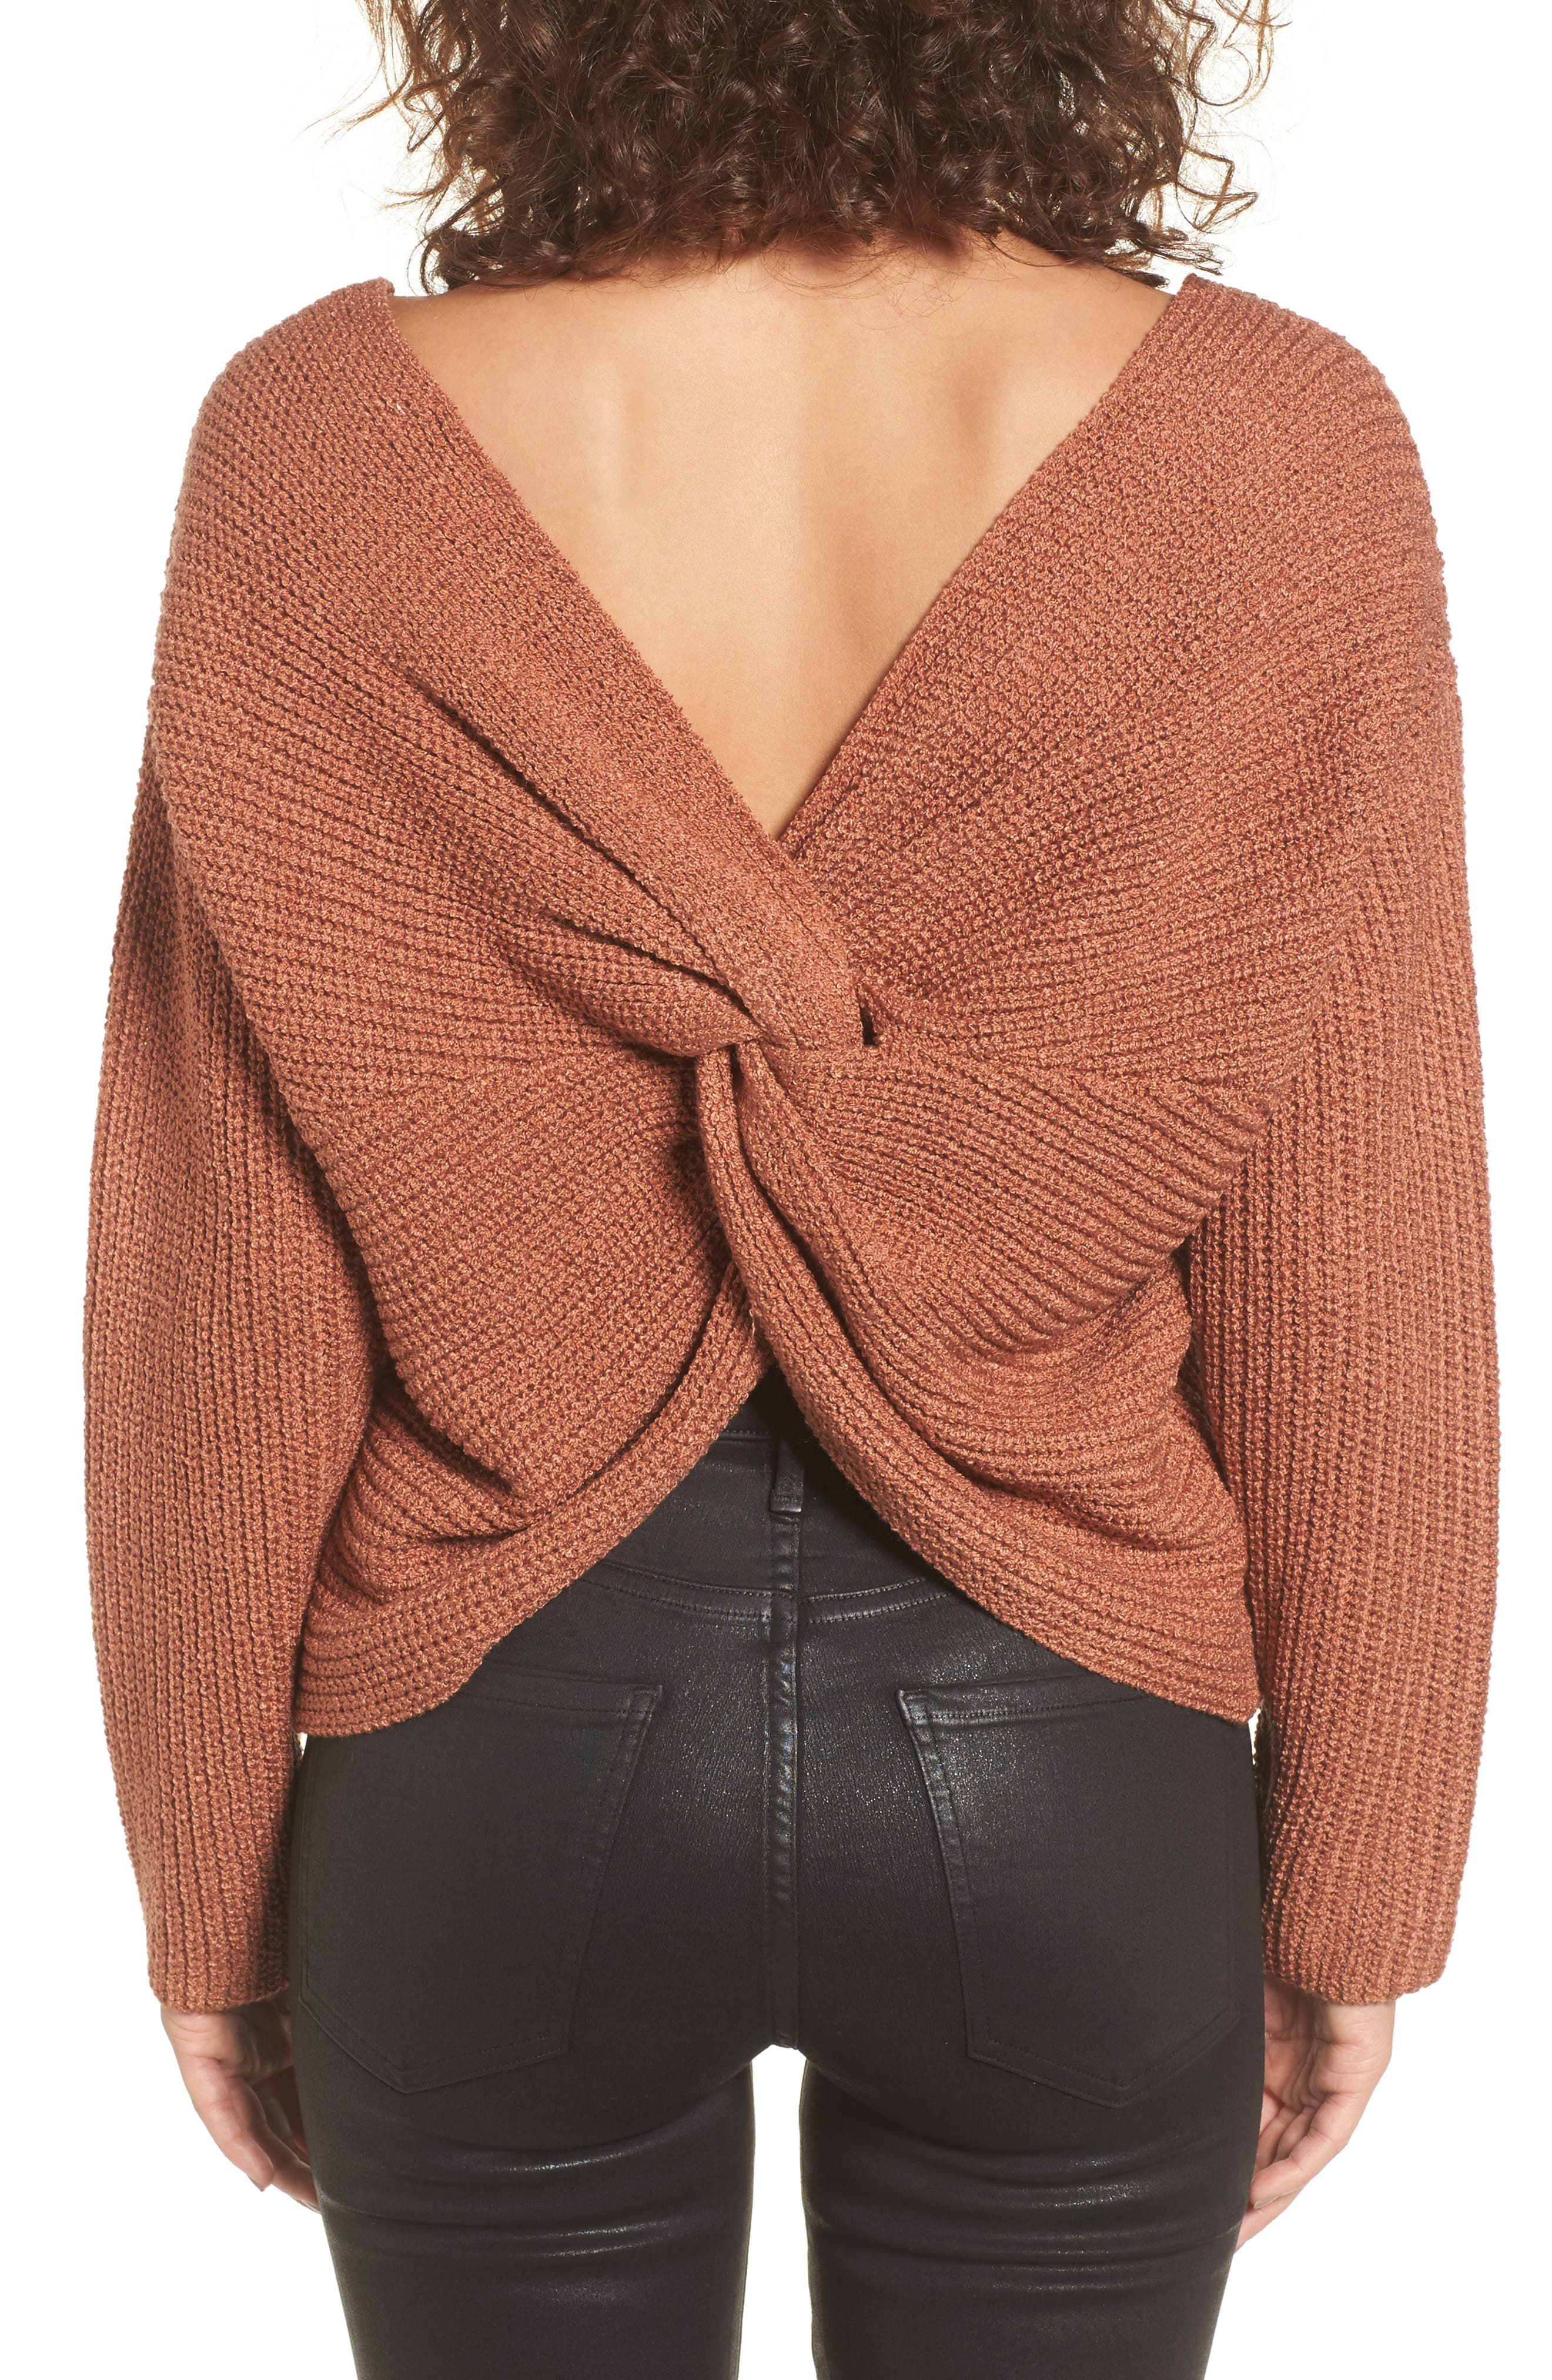 Main Image - ASTR the Label Twist Back Sweater